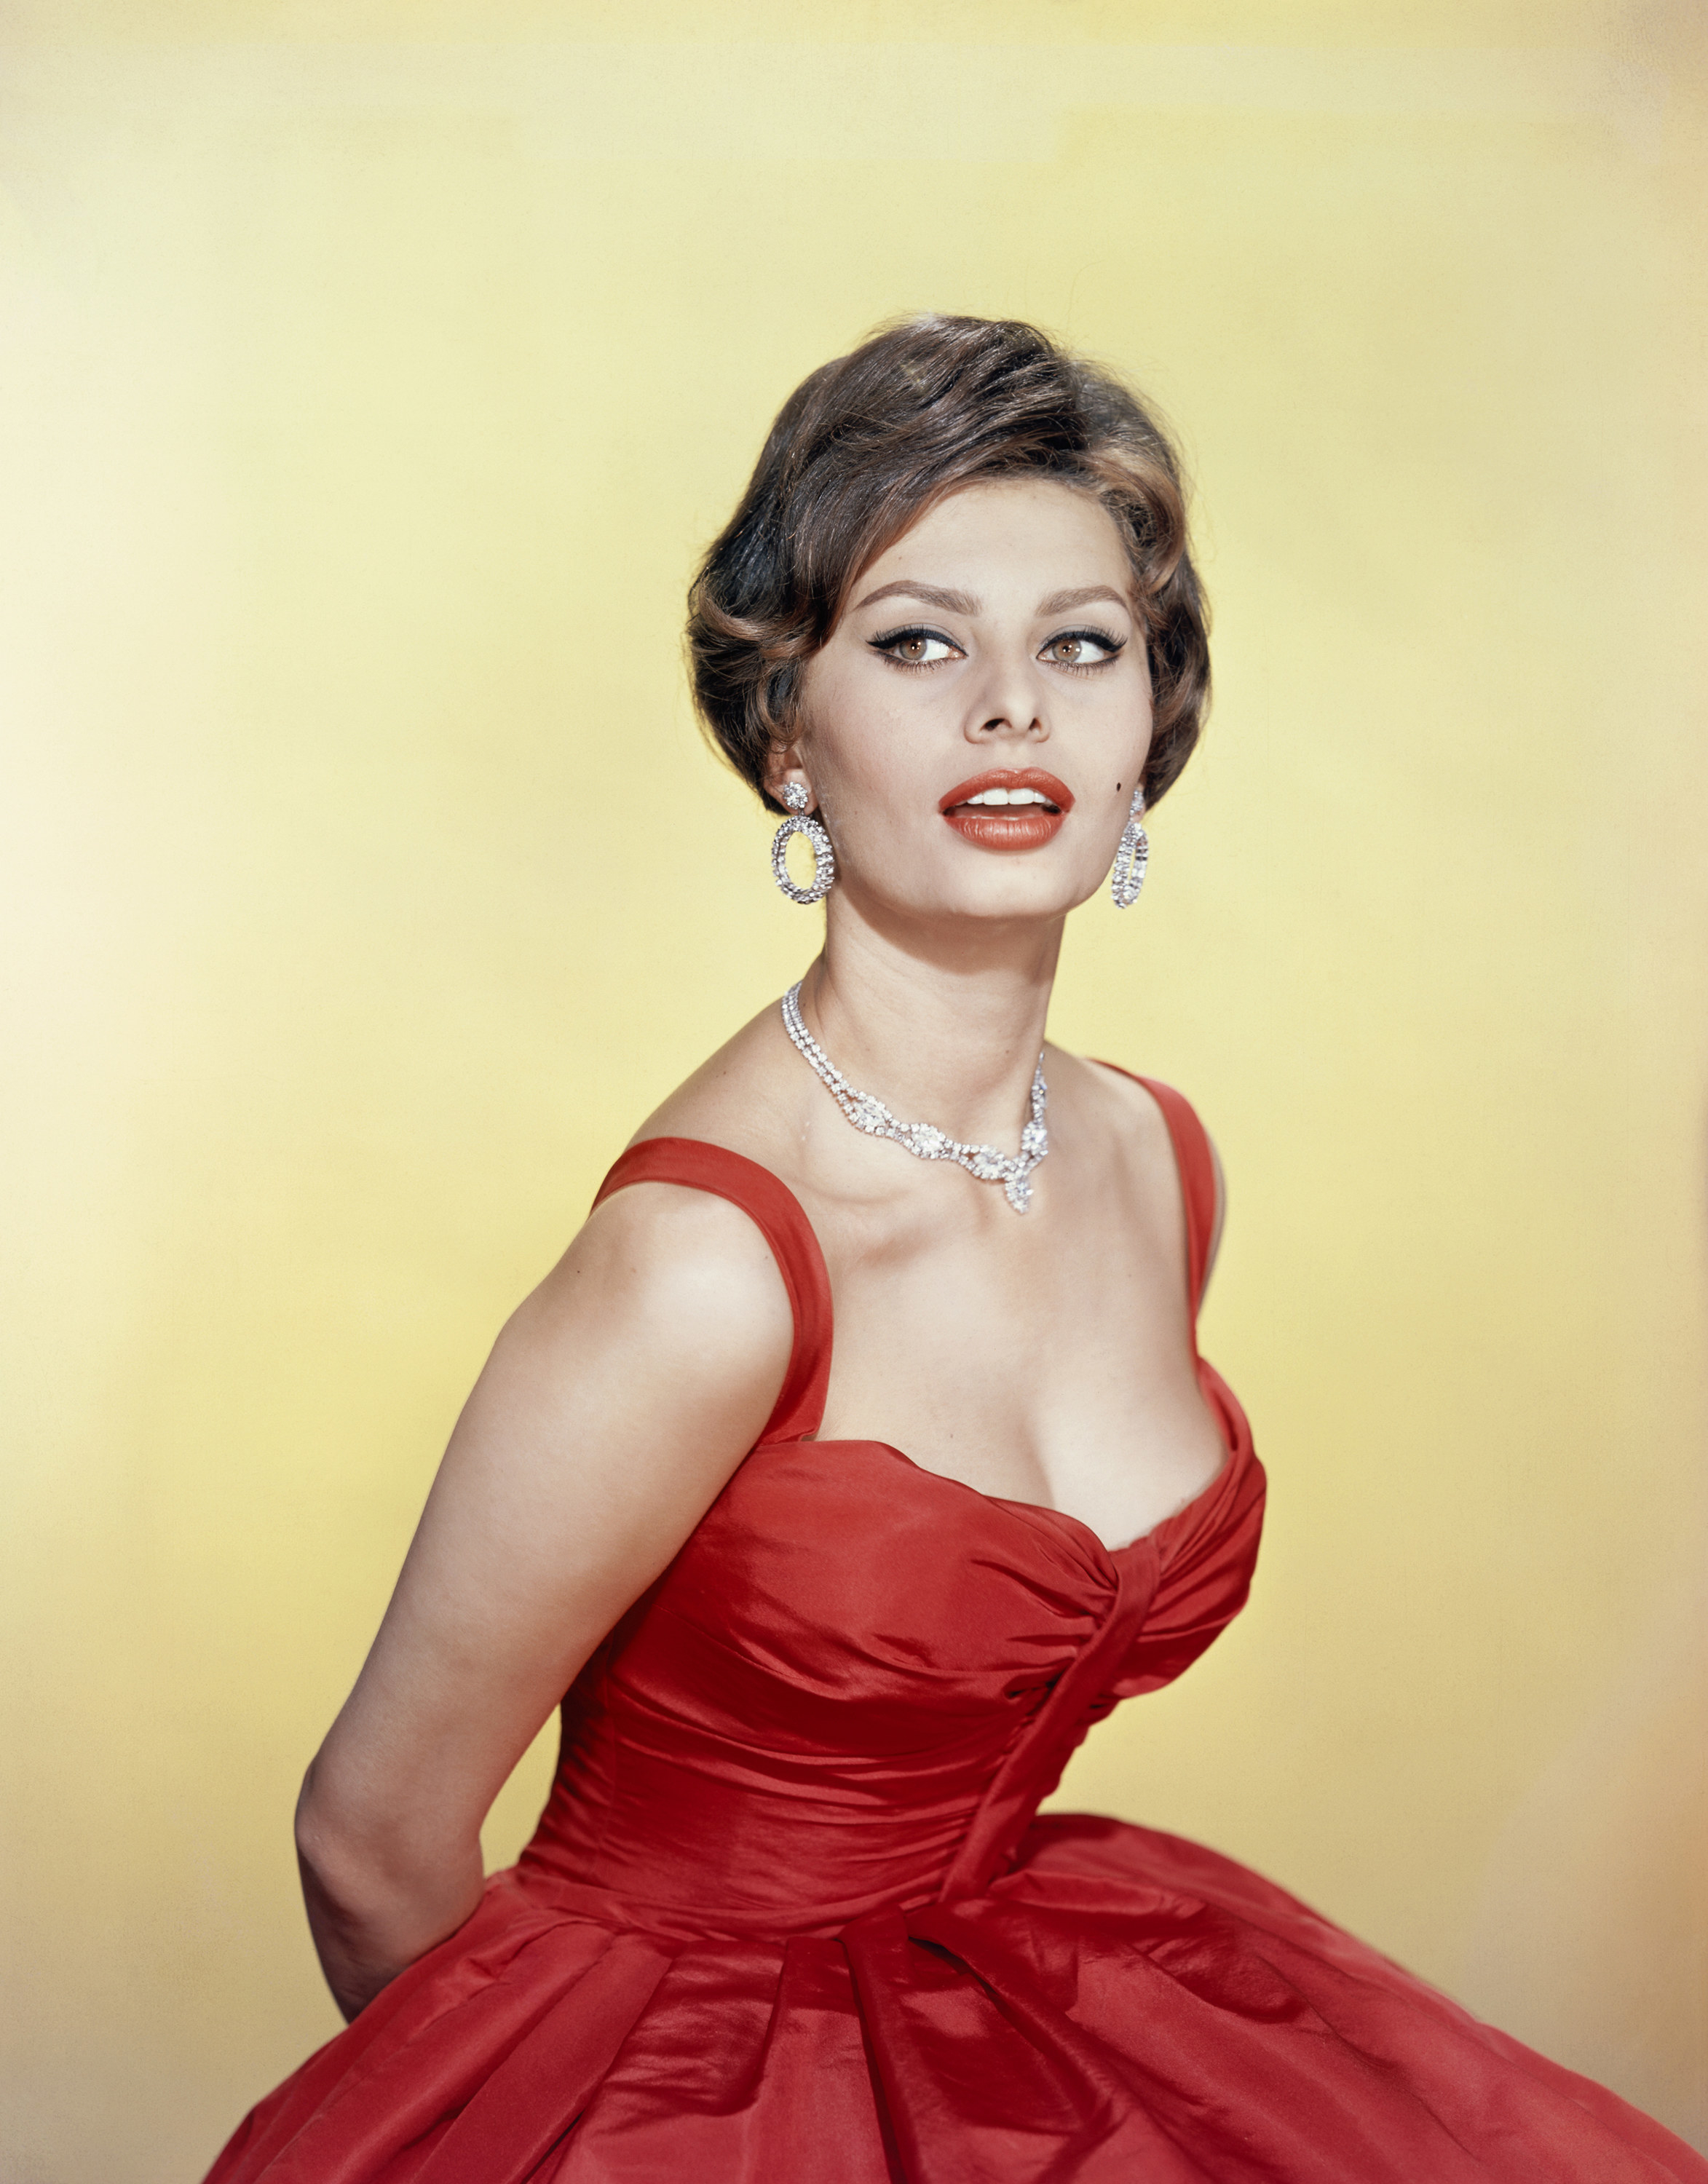 Sofia Loren in an evening gown and diamond jewelry, looking offside away from the camera